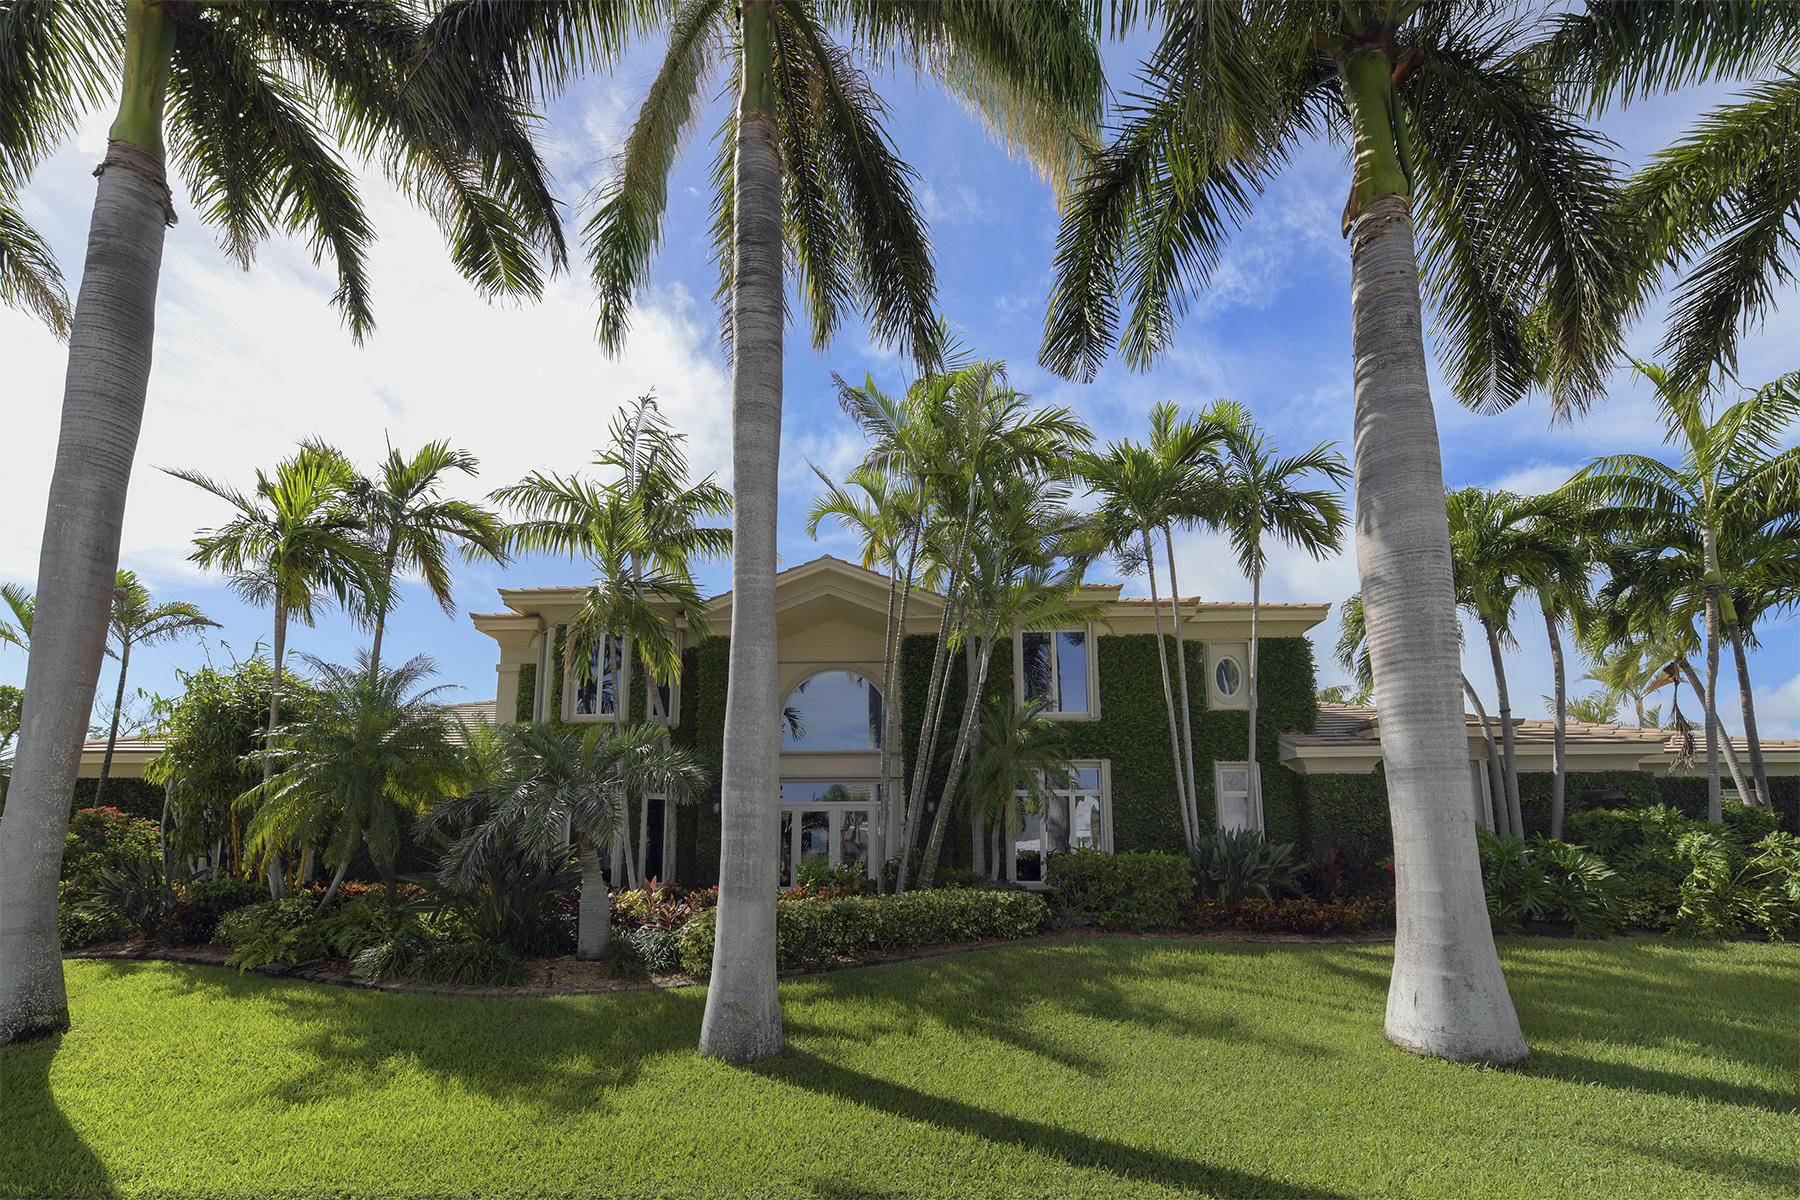 Single Family Homes for Sale at 285 14 Th Street, Key Colony, FL 285 14 Th Street Key Colony, Florida 33051 United States